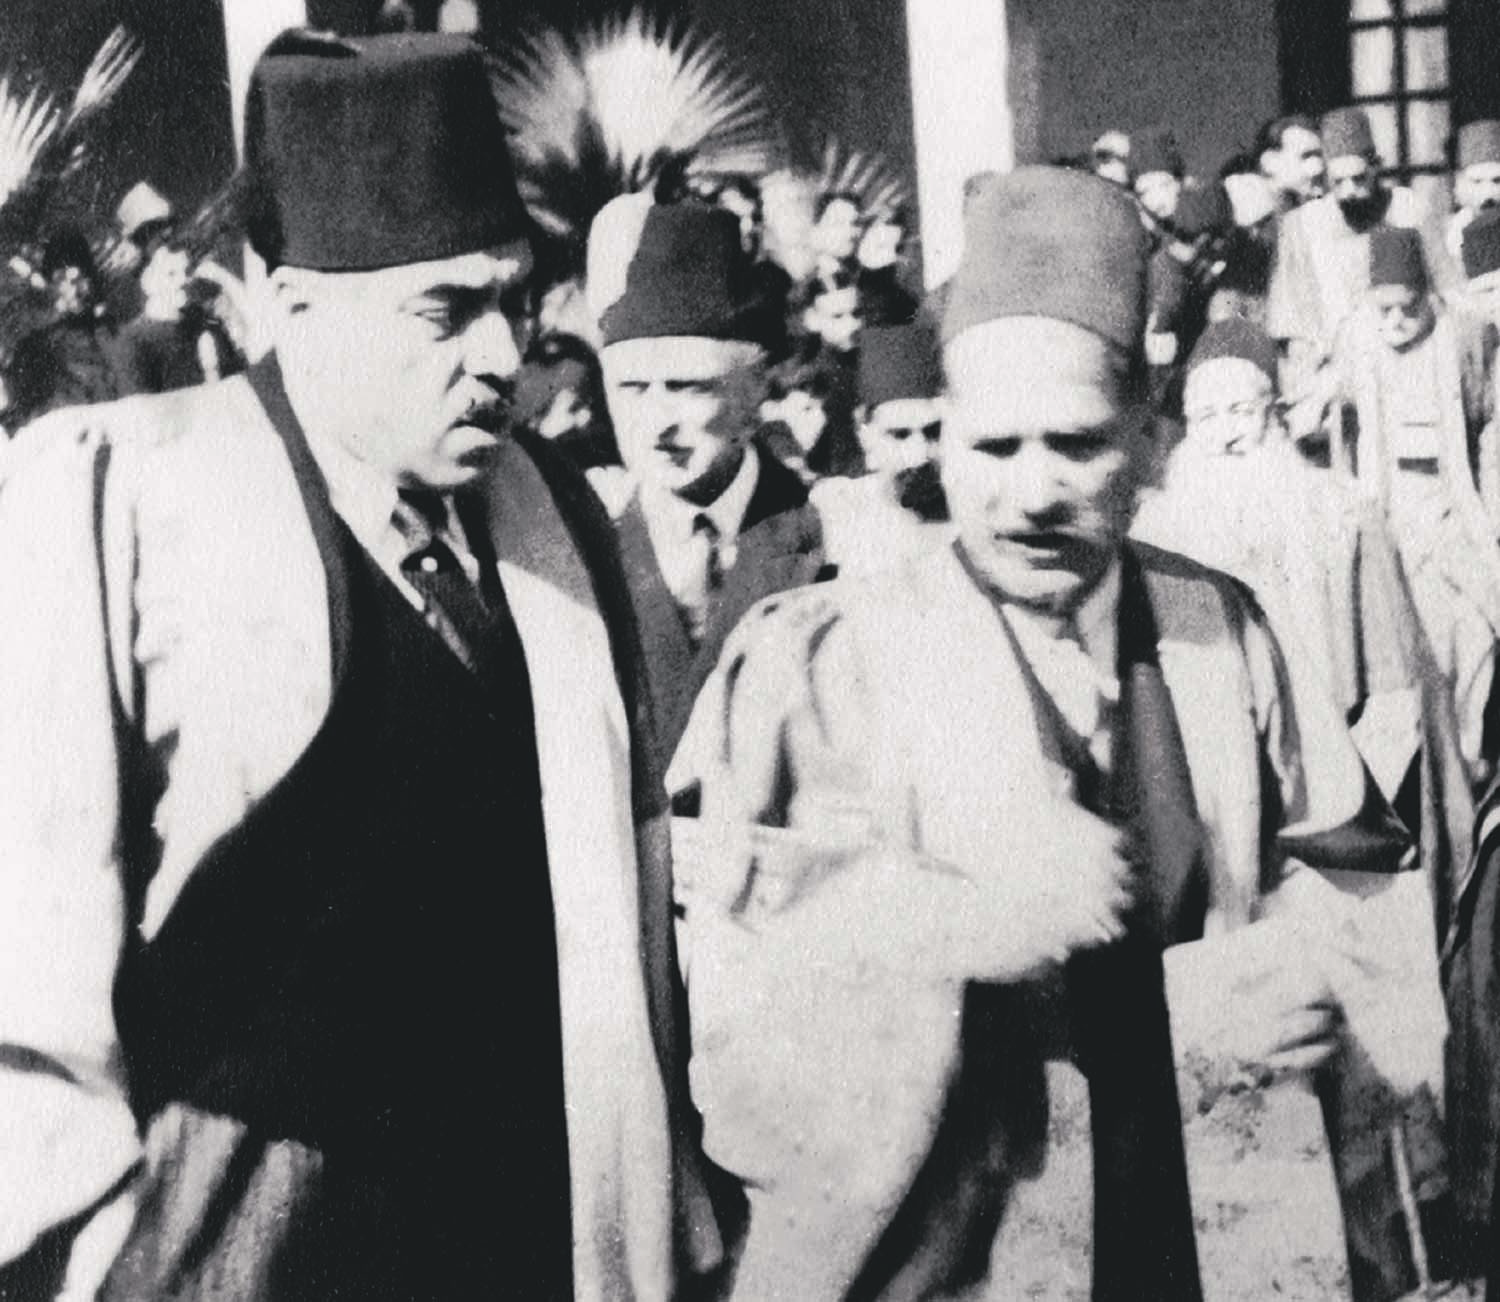 Allama Iqbal with Ross Masood when he visited the Aligarh Muslim University soon after the latter had taken over as the Vice-Chancellor in 1929. Photo: The Allama Iqbal Collection.